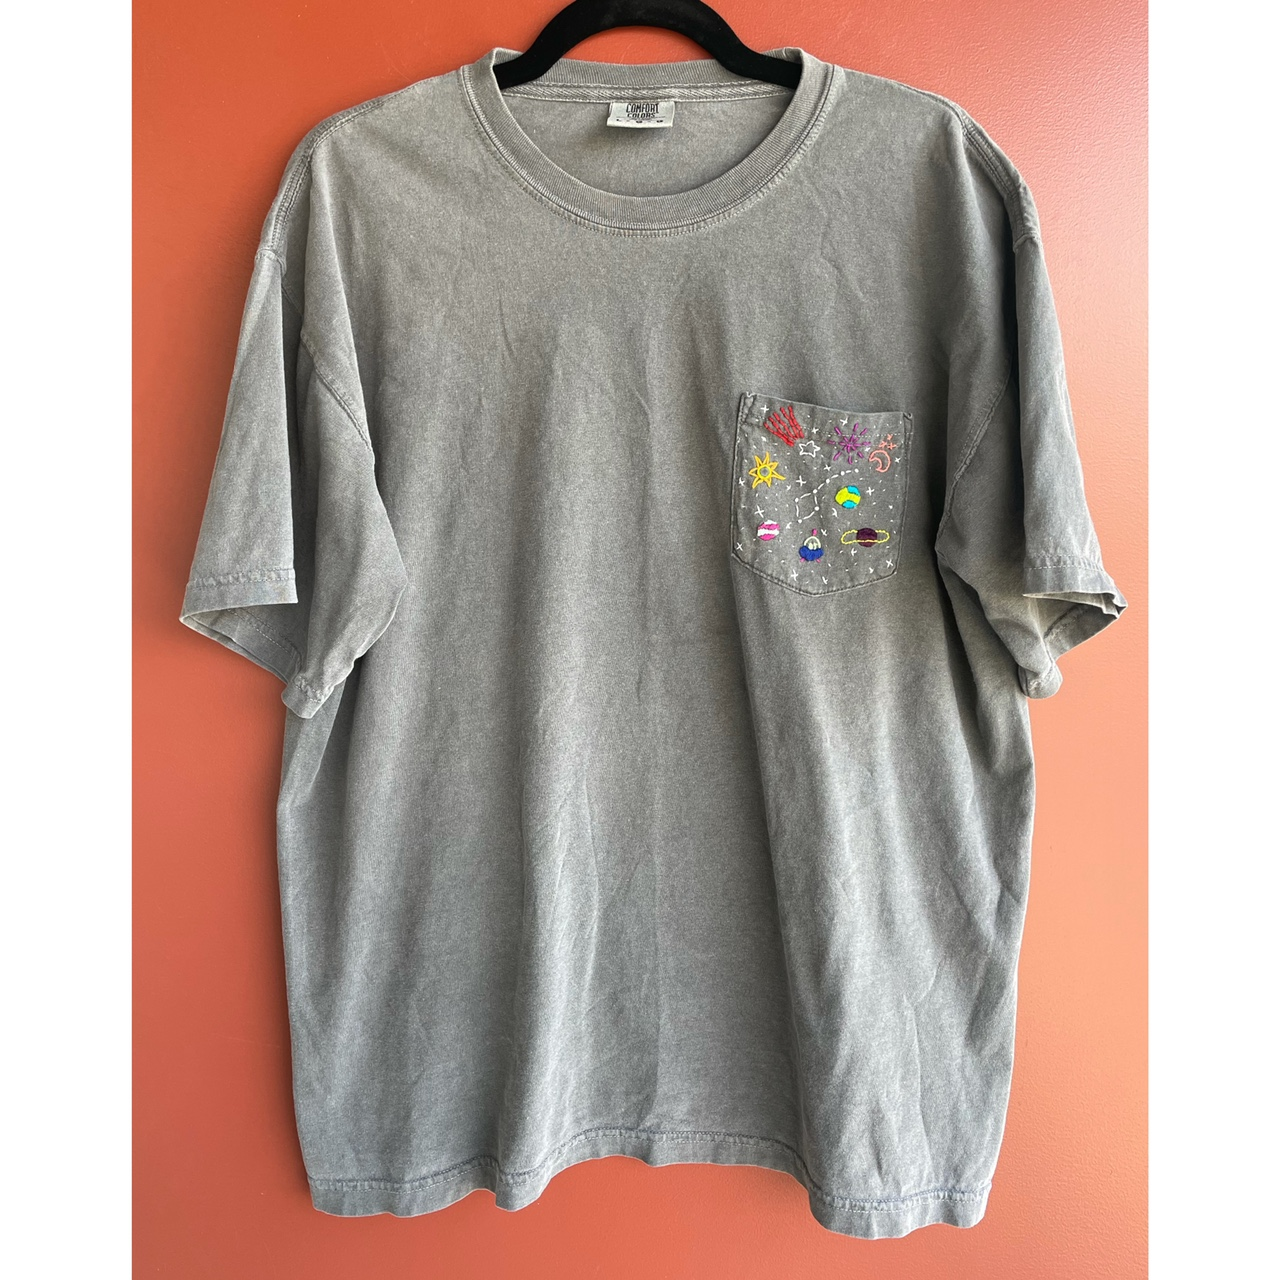 Product Image 1 - Unique #hand-embroidered grey cotton short-sleeve